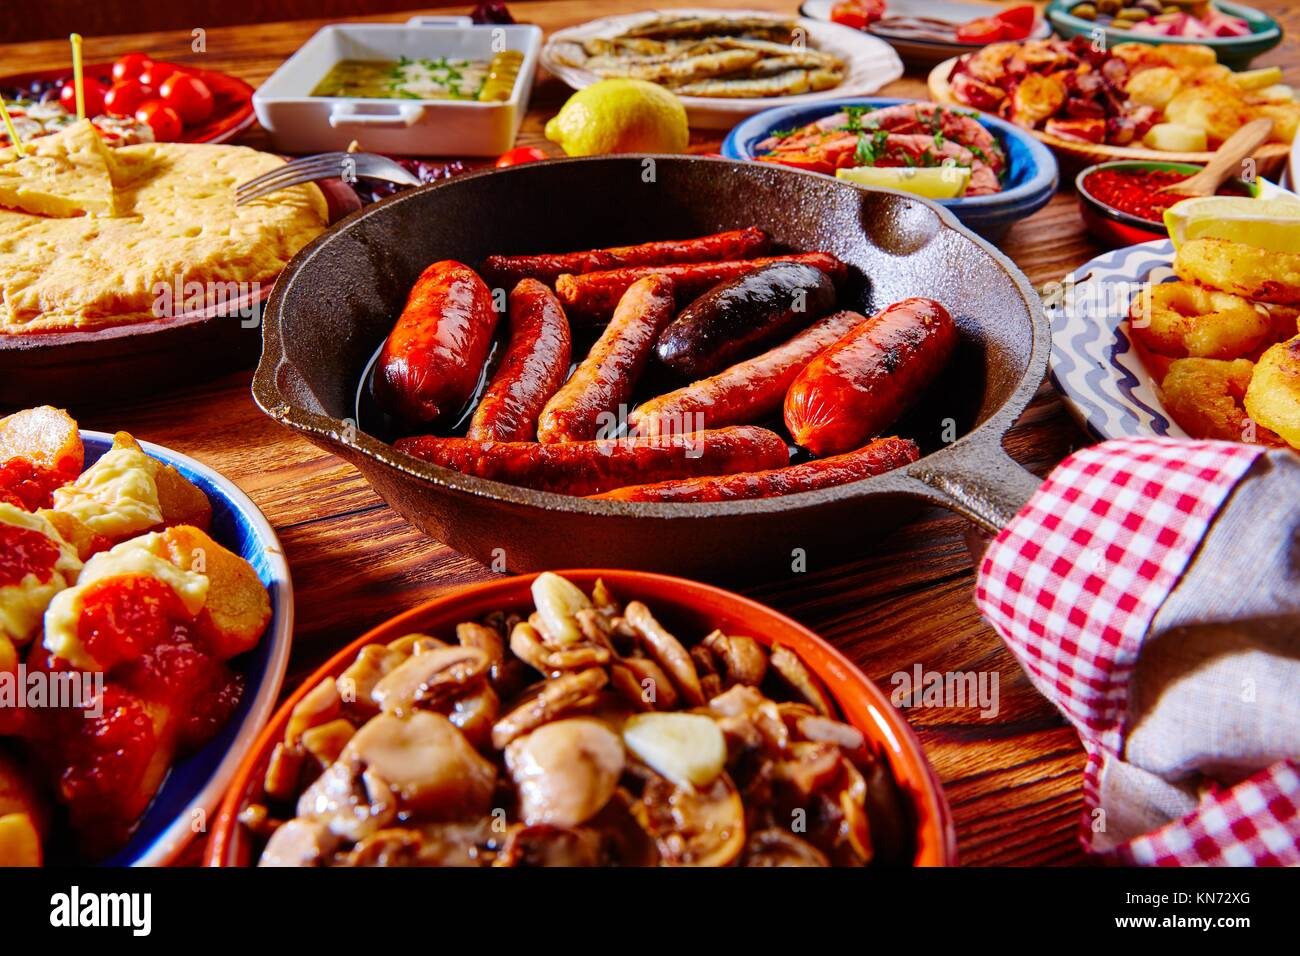 Tapas from spain varied mix of most popular tapa mediterranean food. Stock Photo